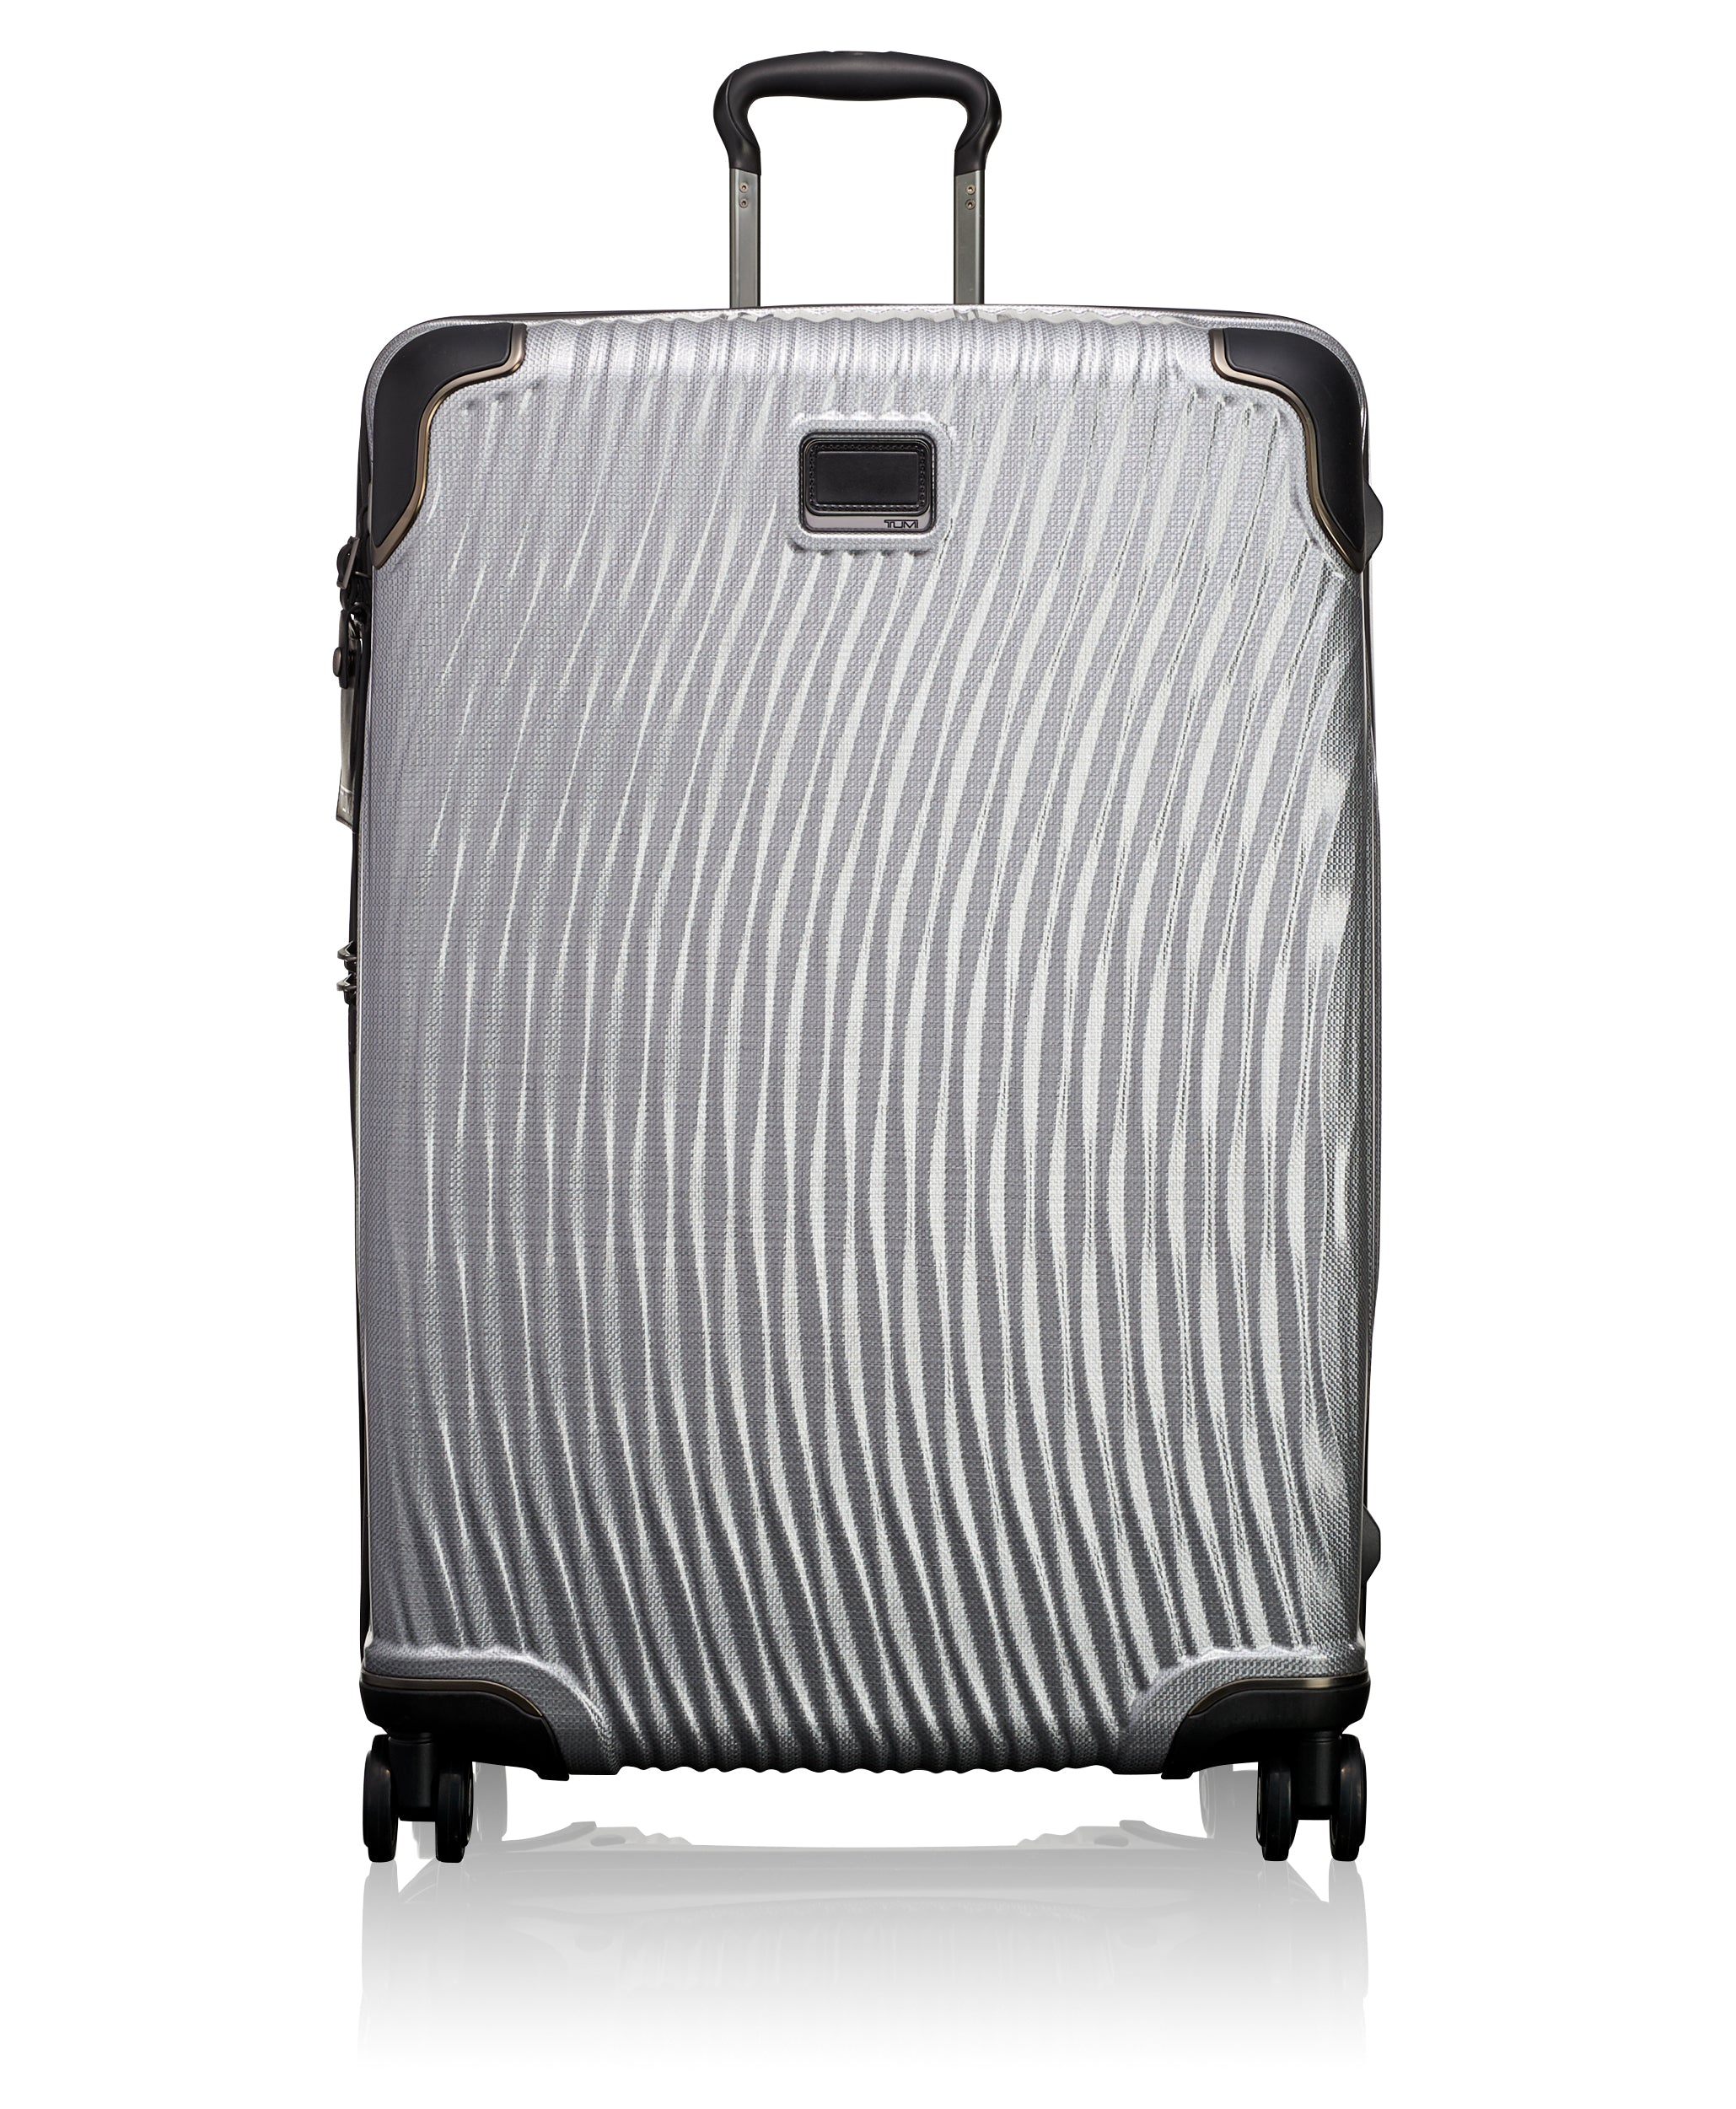 Tumi Latitude Extended Trip Packing Case - Silver | MEGO